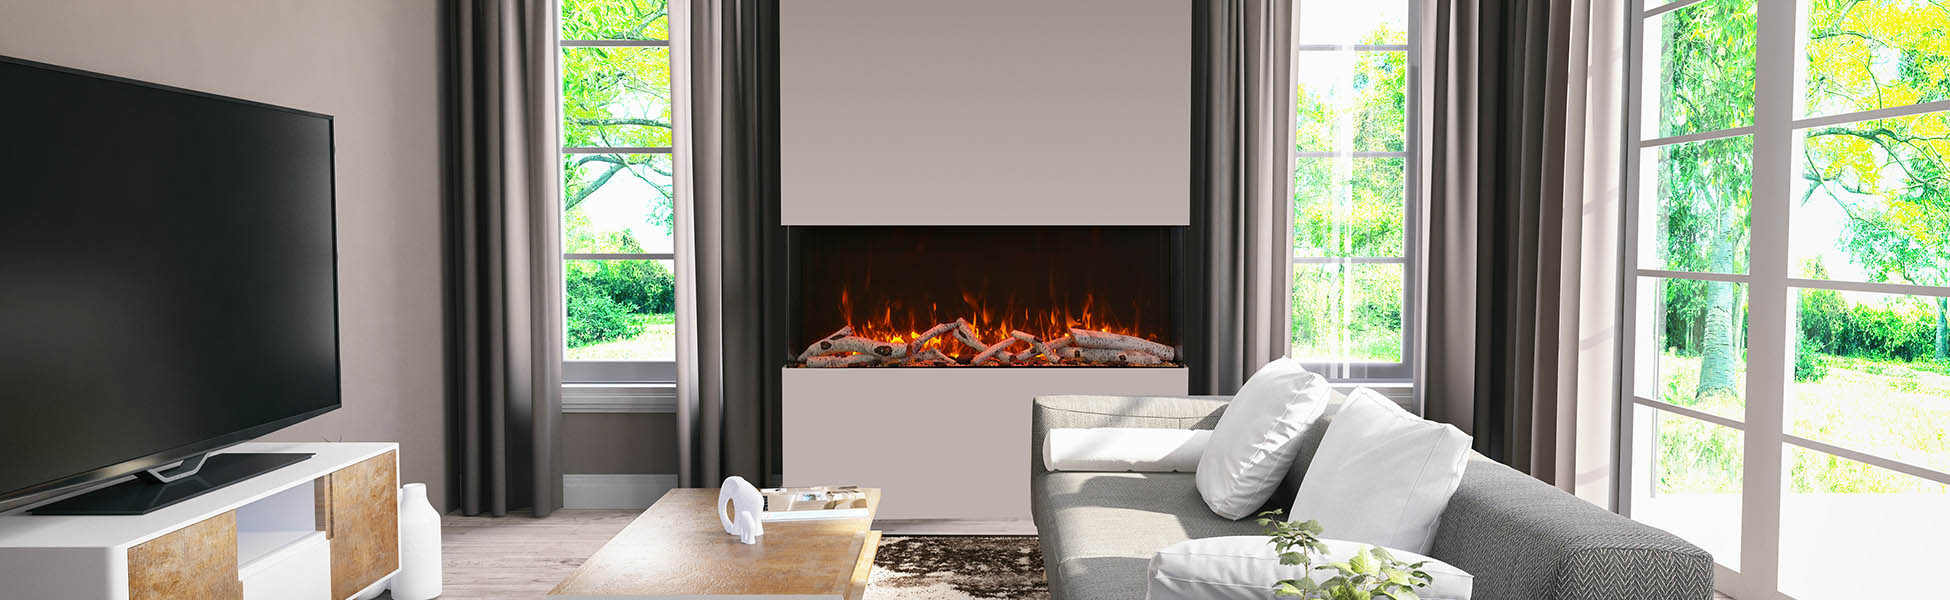 elelctric Fireplace